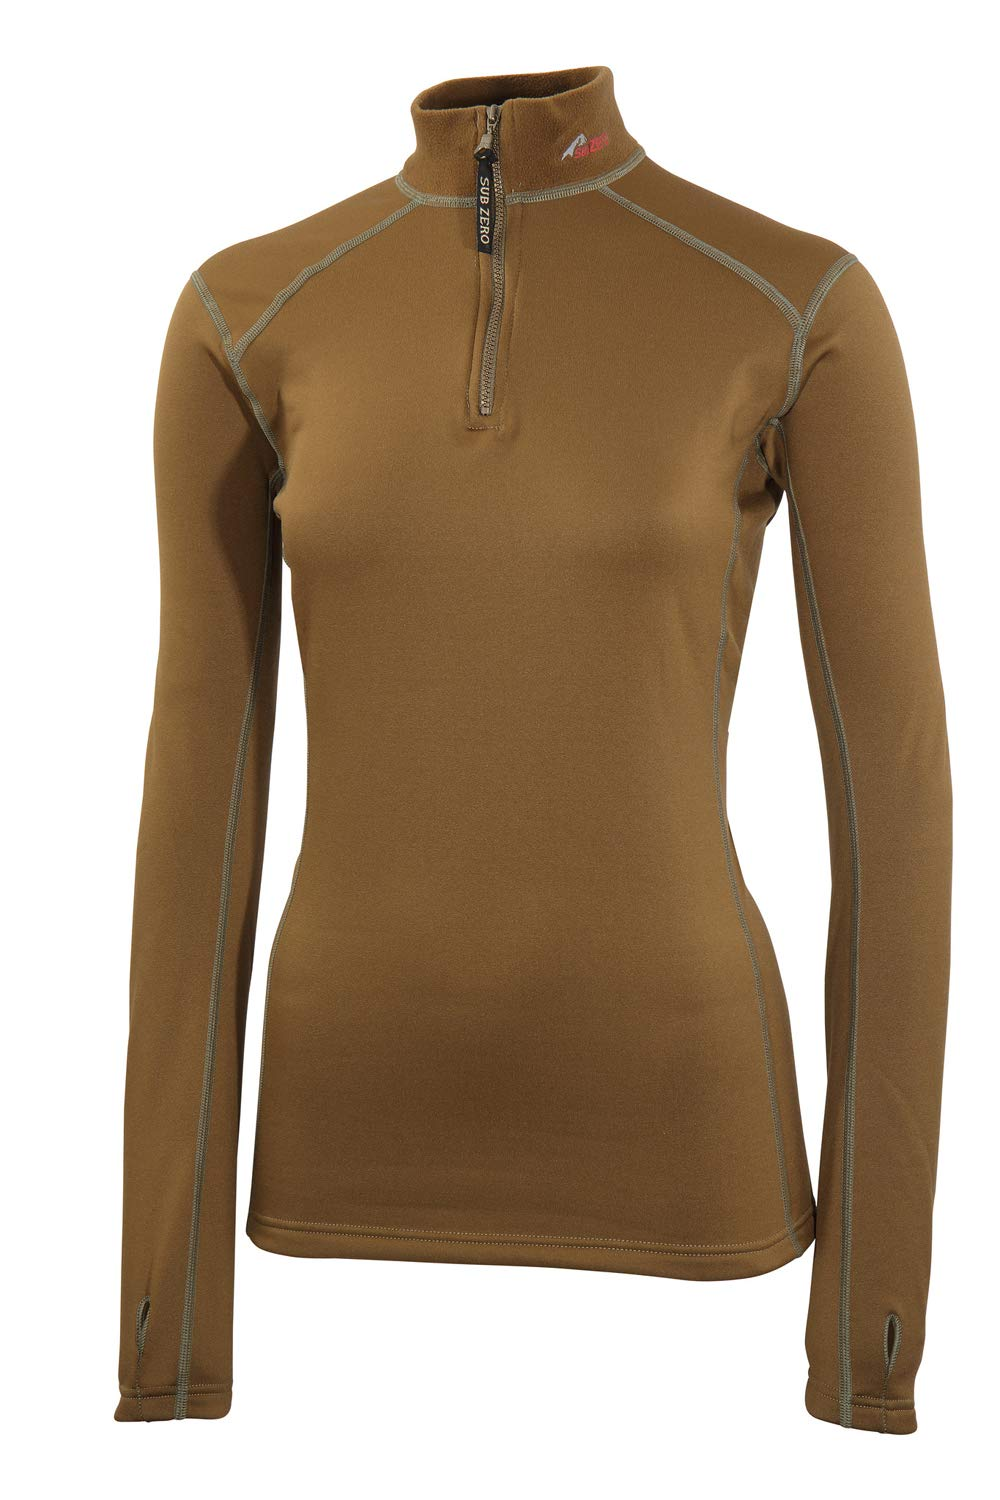 6176Fhe9F2L - SUB ZERO Womens Factor 2 Insulating Winter Mid Layer Thermal Underwear Zip Neck Turtle Long Sleeve Top